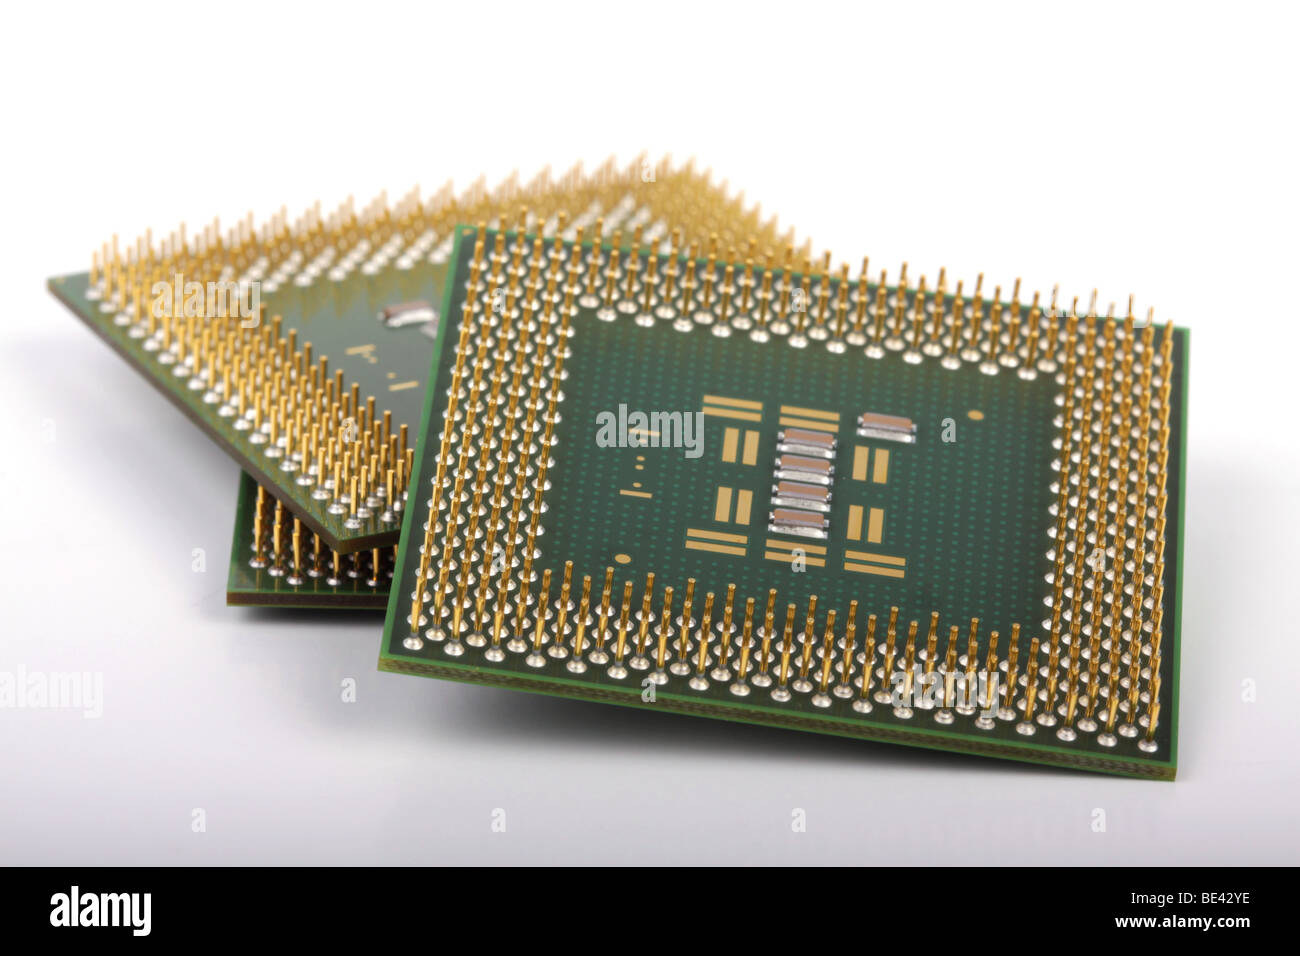 Several computer chips on a white background. - Stock Image